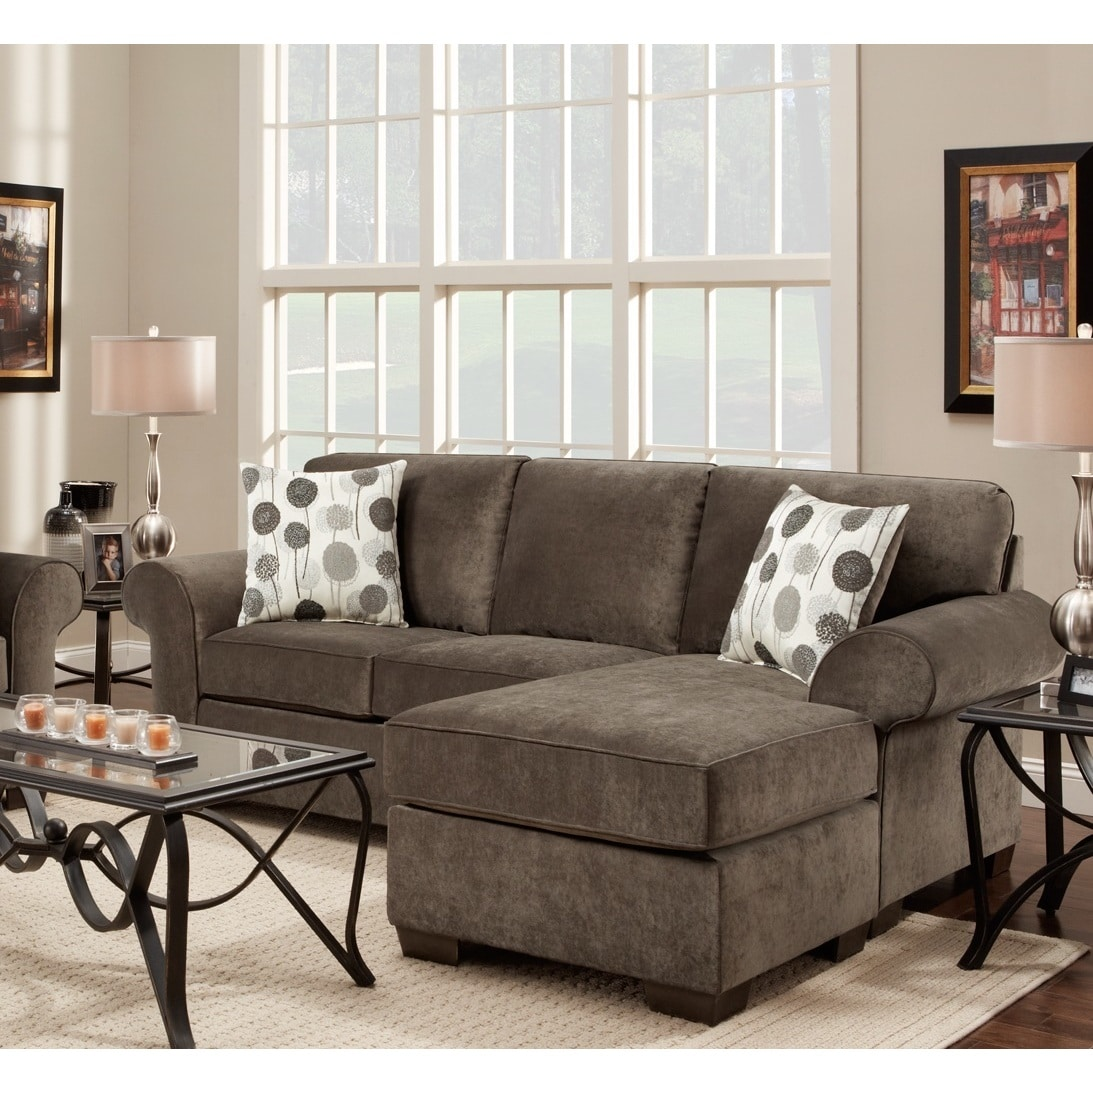 elizabeth ash fabric sectional sofa with 2 pillows - free shipping